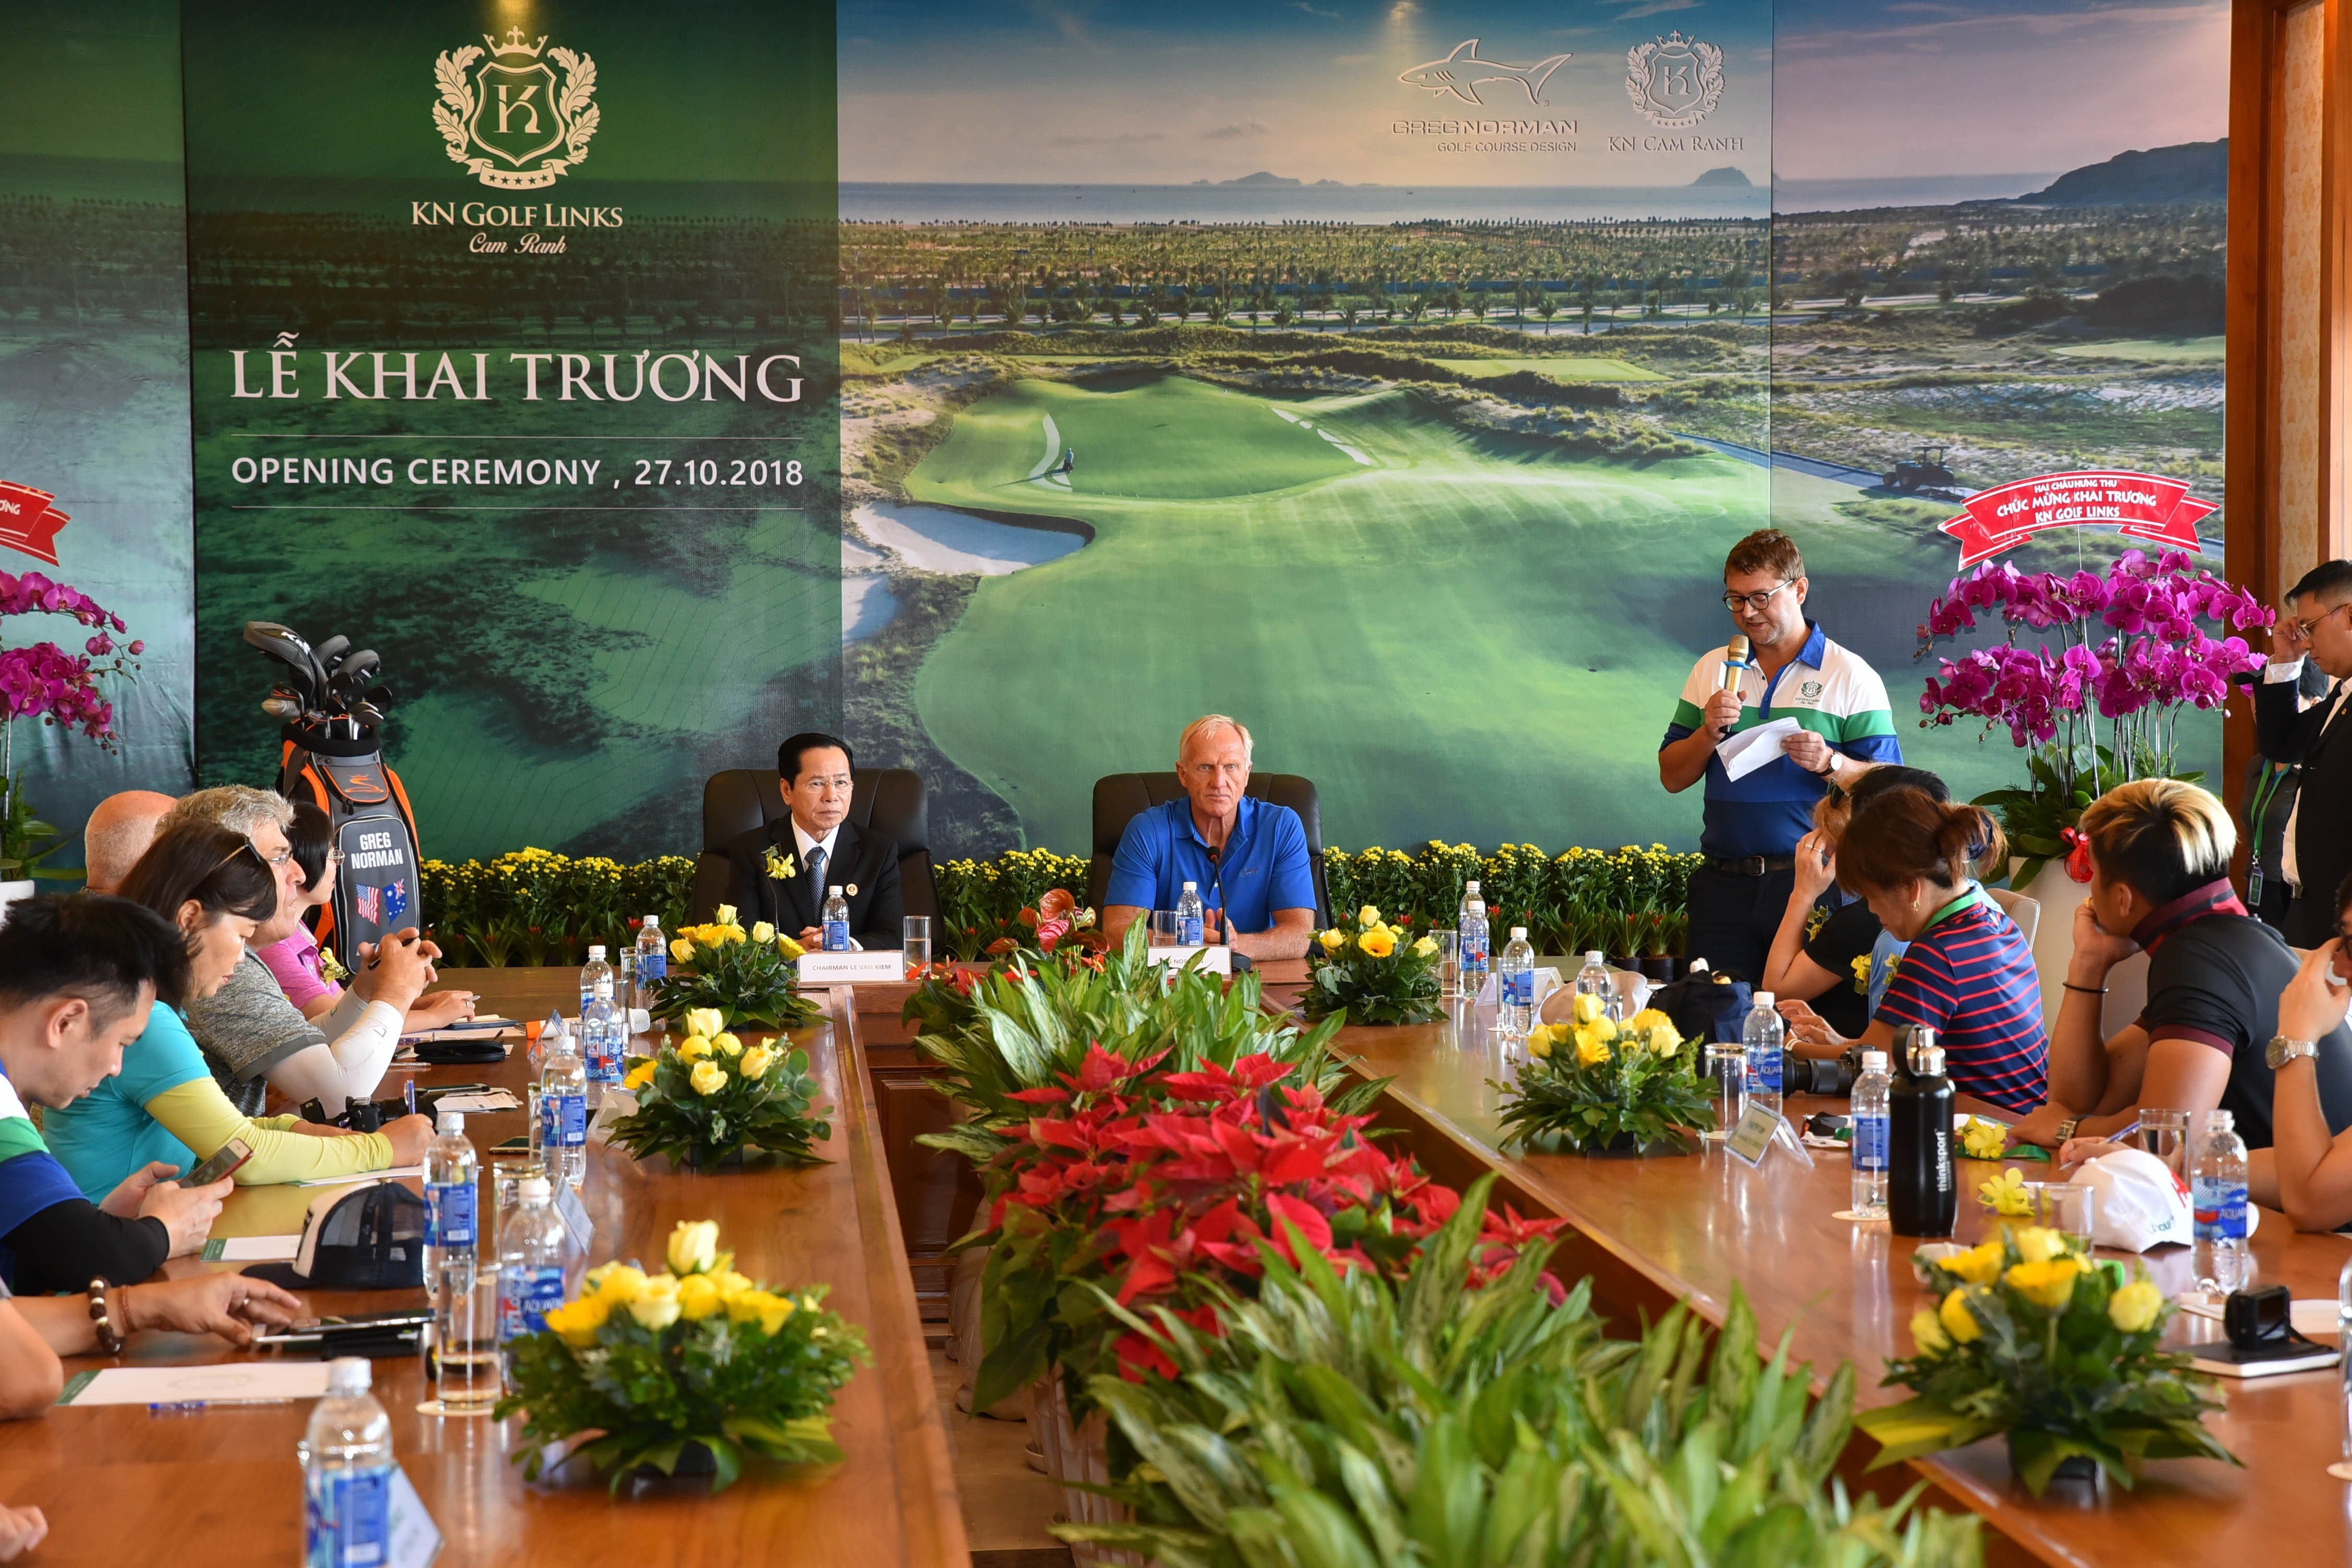 Greg Norman's Third Course in Vietnam Opens for Play